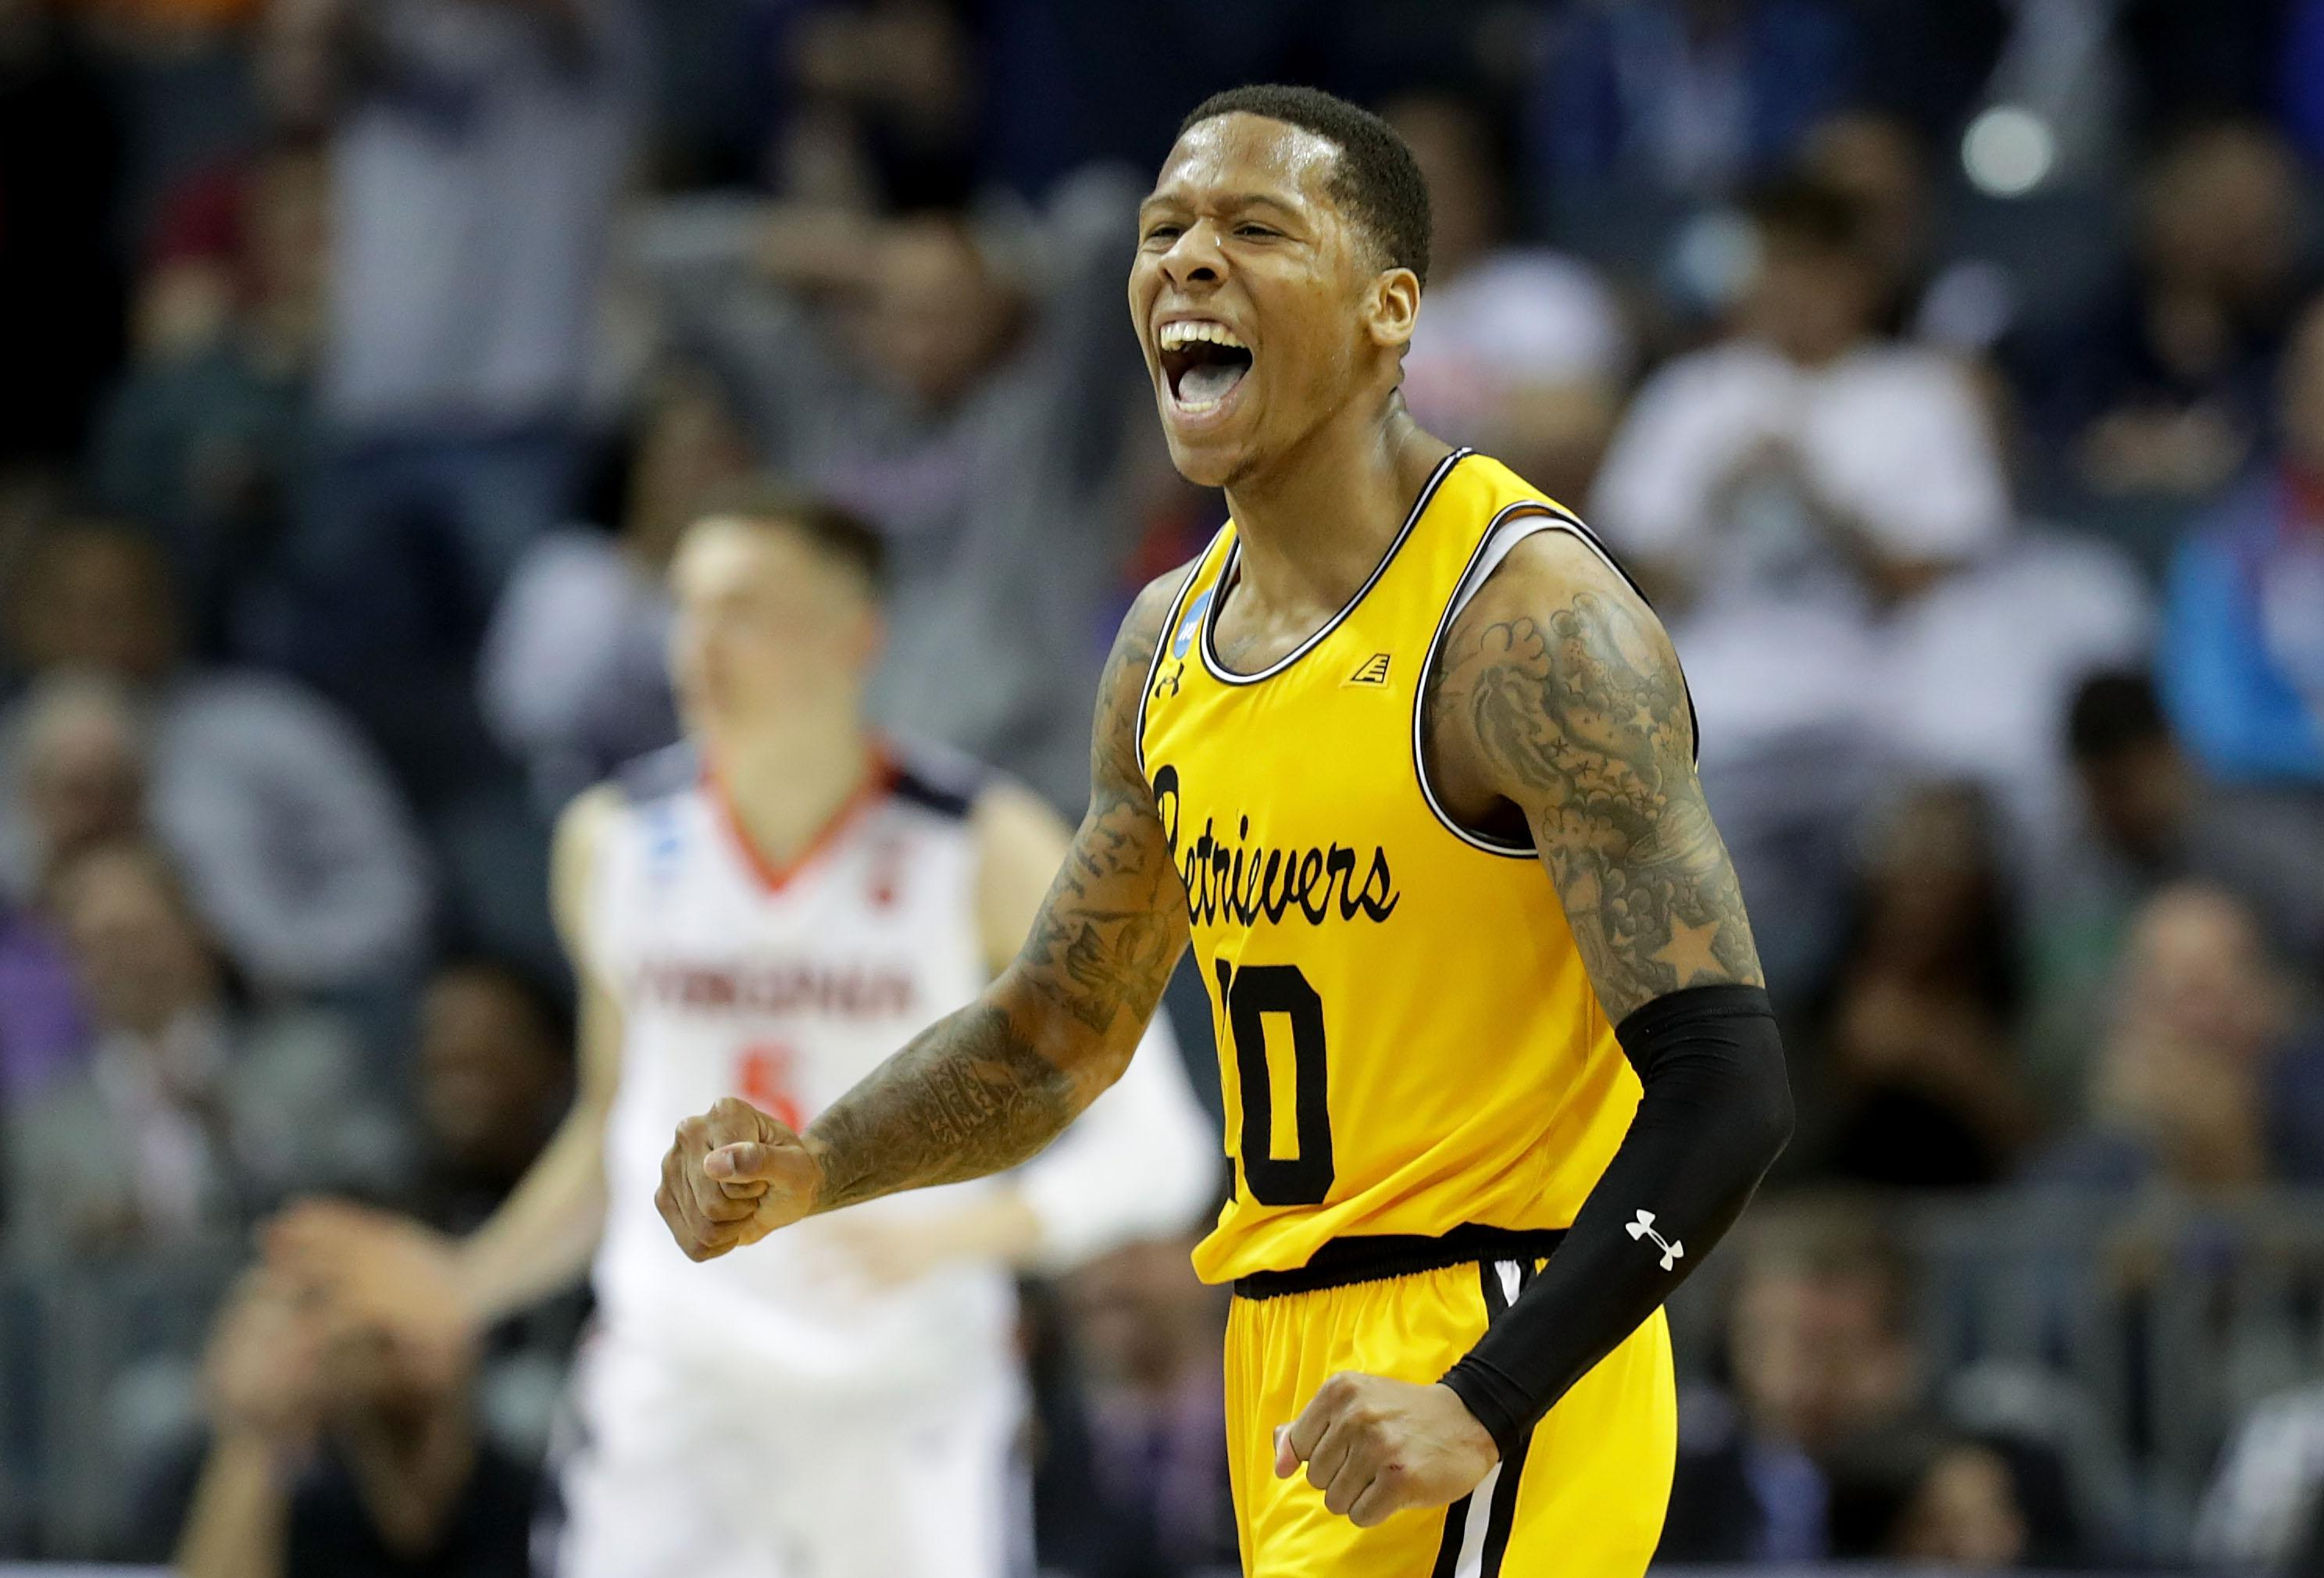 CHARLOTTE, NC - MARCH 16:  Jairus Lyles #10 of the UMBC Retrievers reacts after a score against the Virginia Cavaliers during the first round of the 2018 NCAA Men's Basketball Tournament at Spectrum Center on March 16, 2018 in Charlotte, North Carolina.  (Photo by Streeter Lecka/Getty Images)